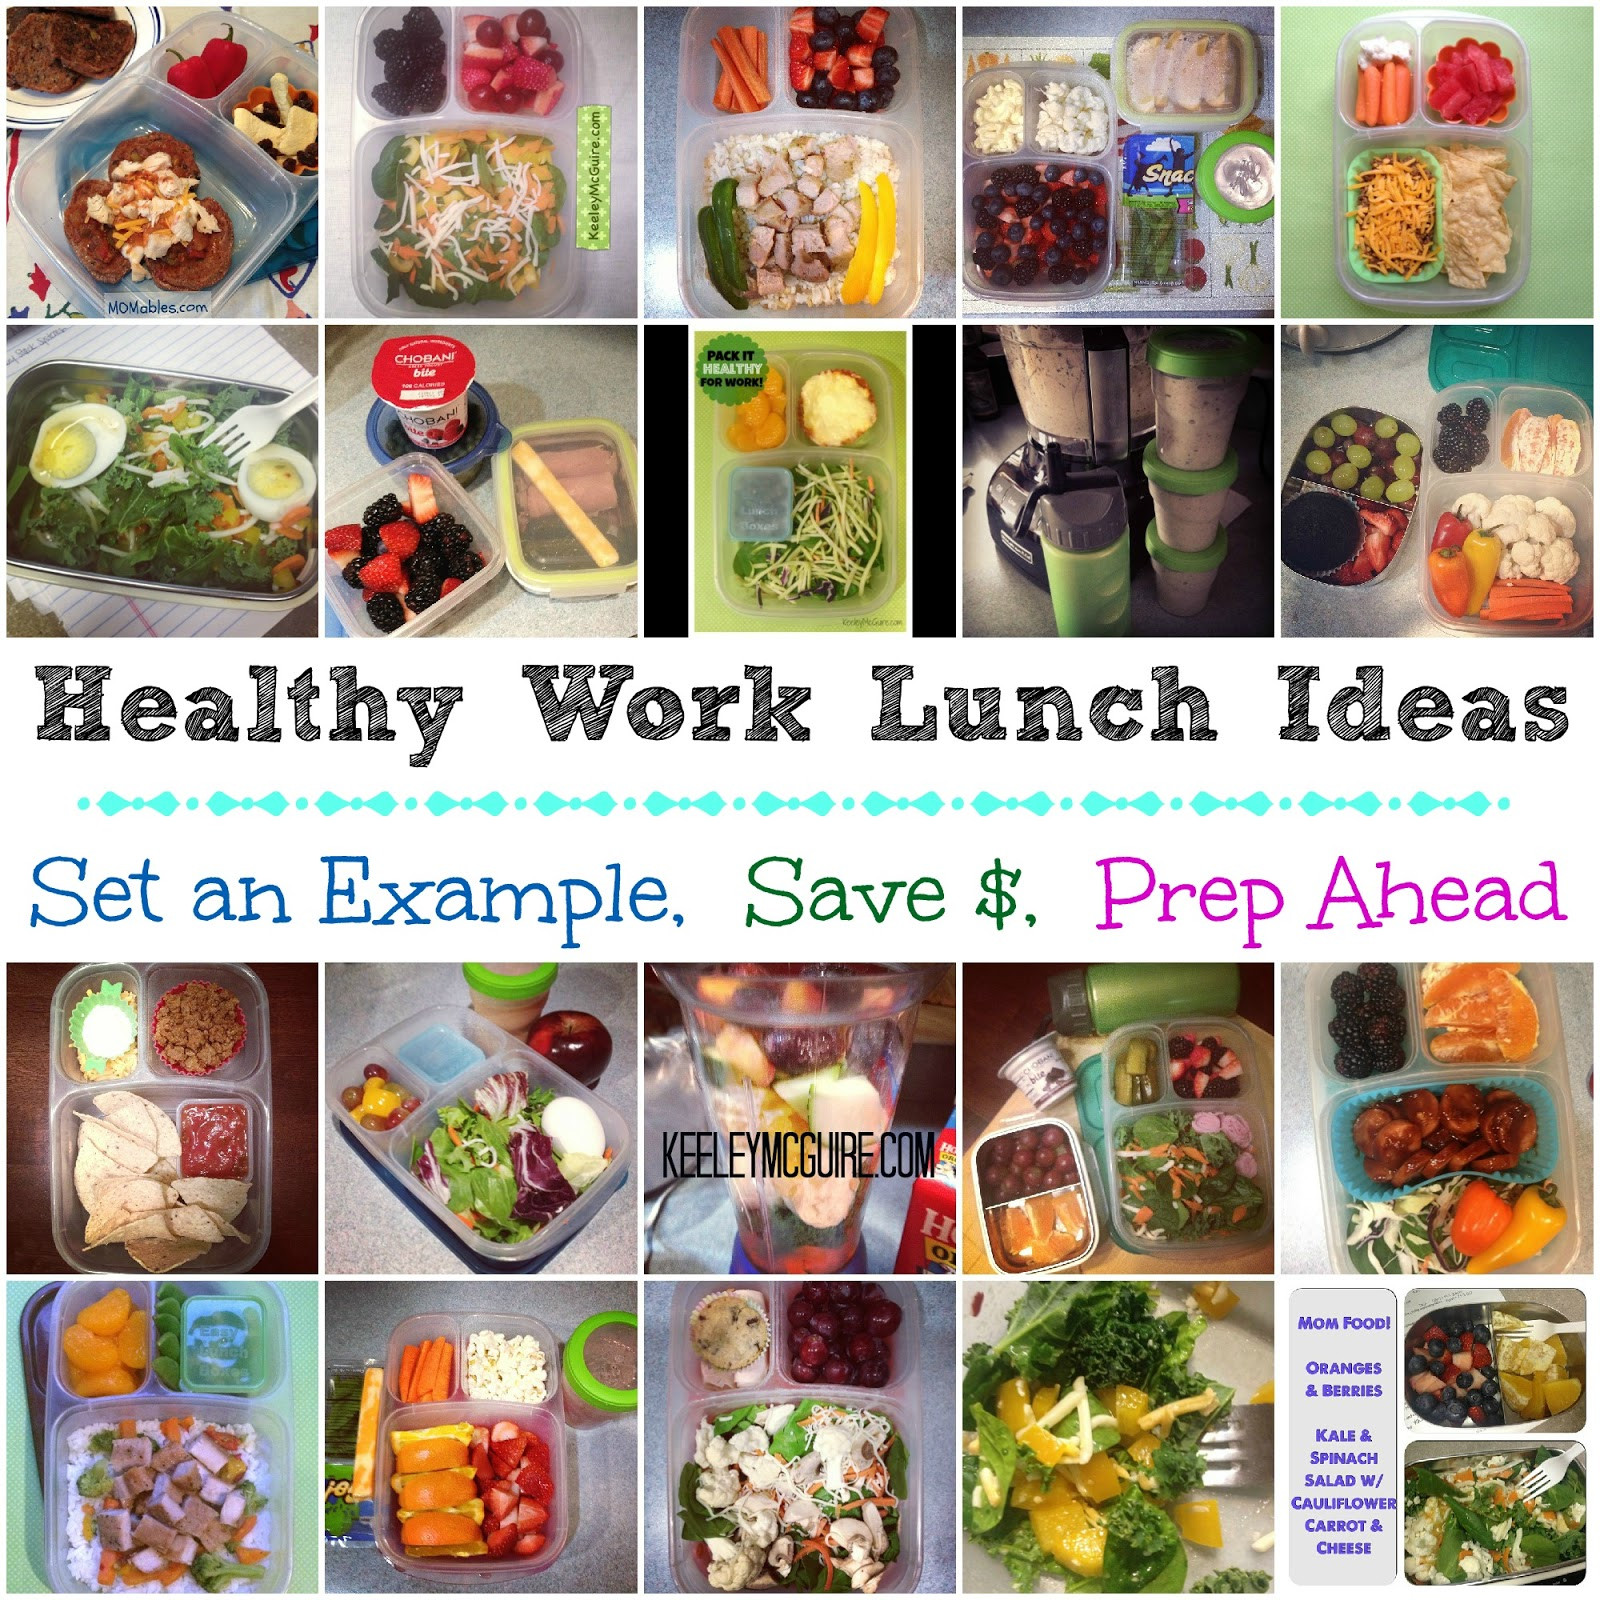 Healthy Packed Lunches For Work  Gluten Free & Allergy Friendly Lunch Made Easy Healthy